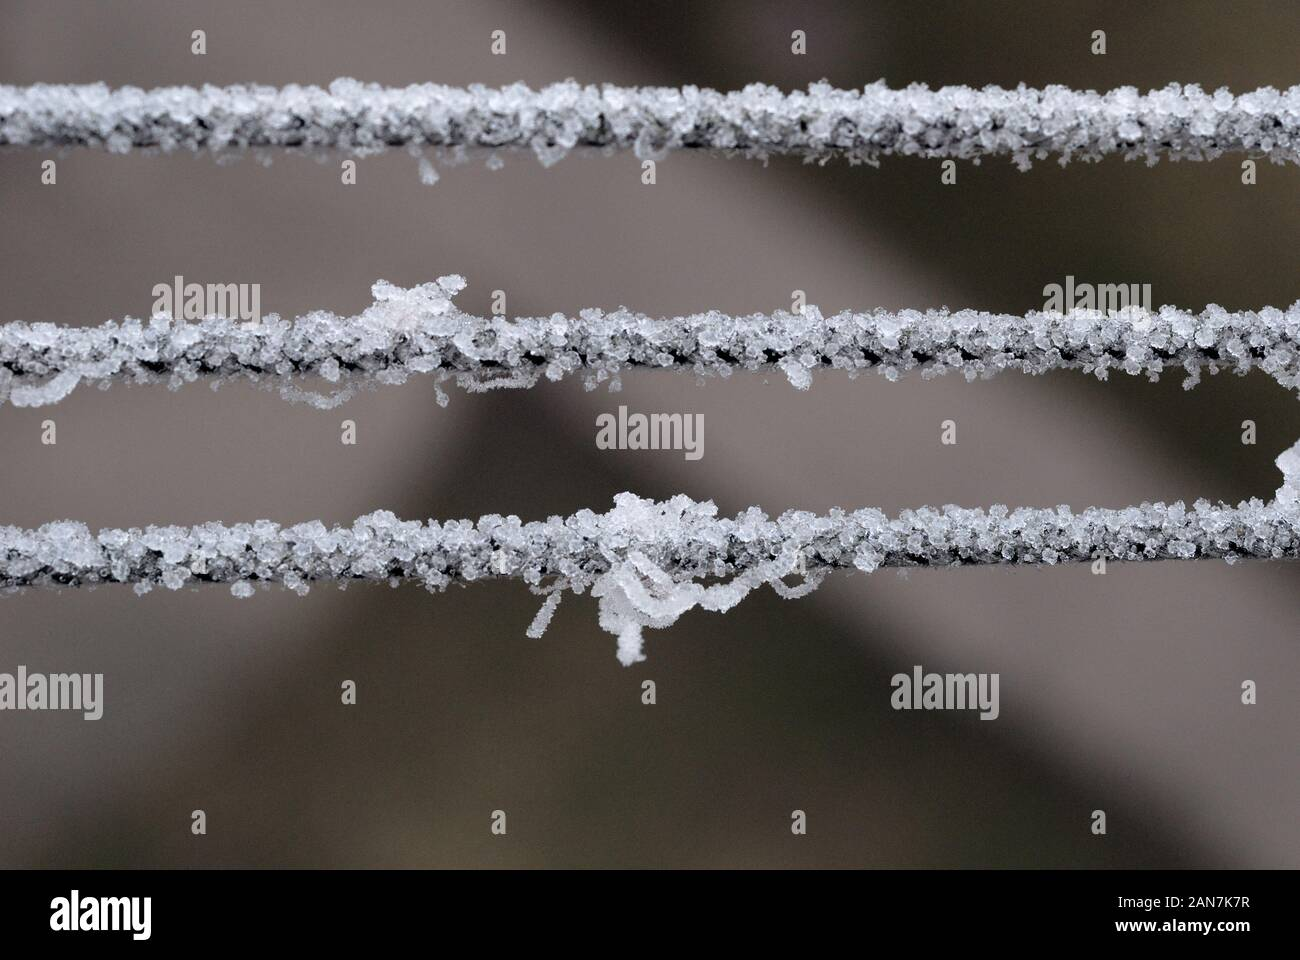 Hoarfrost on the ropes in winter closeup. Shallow depth of field Stock Photo